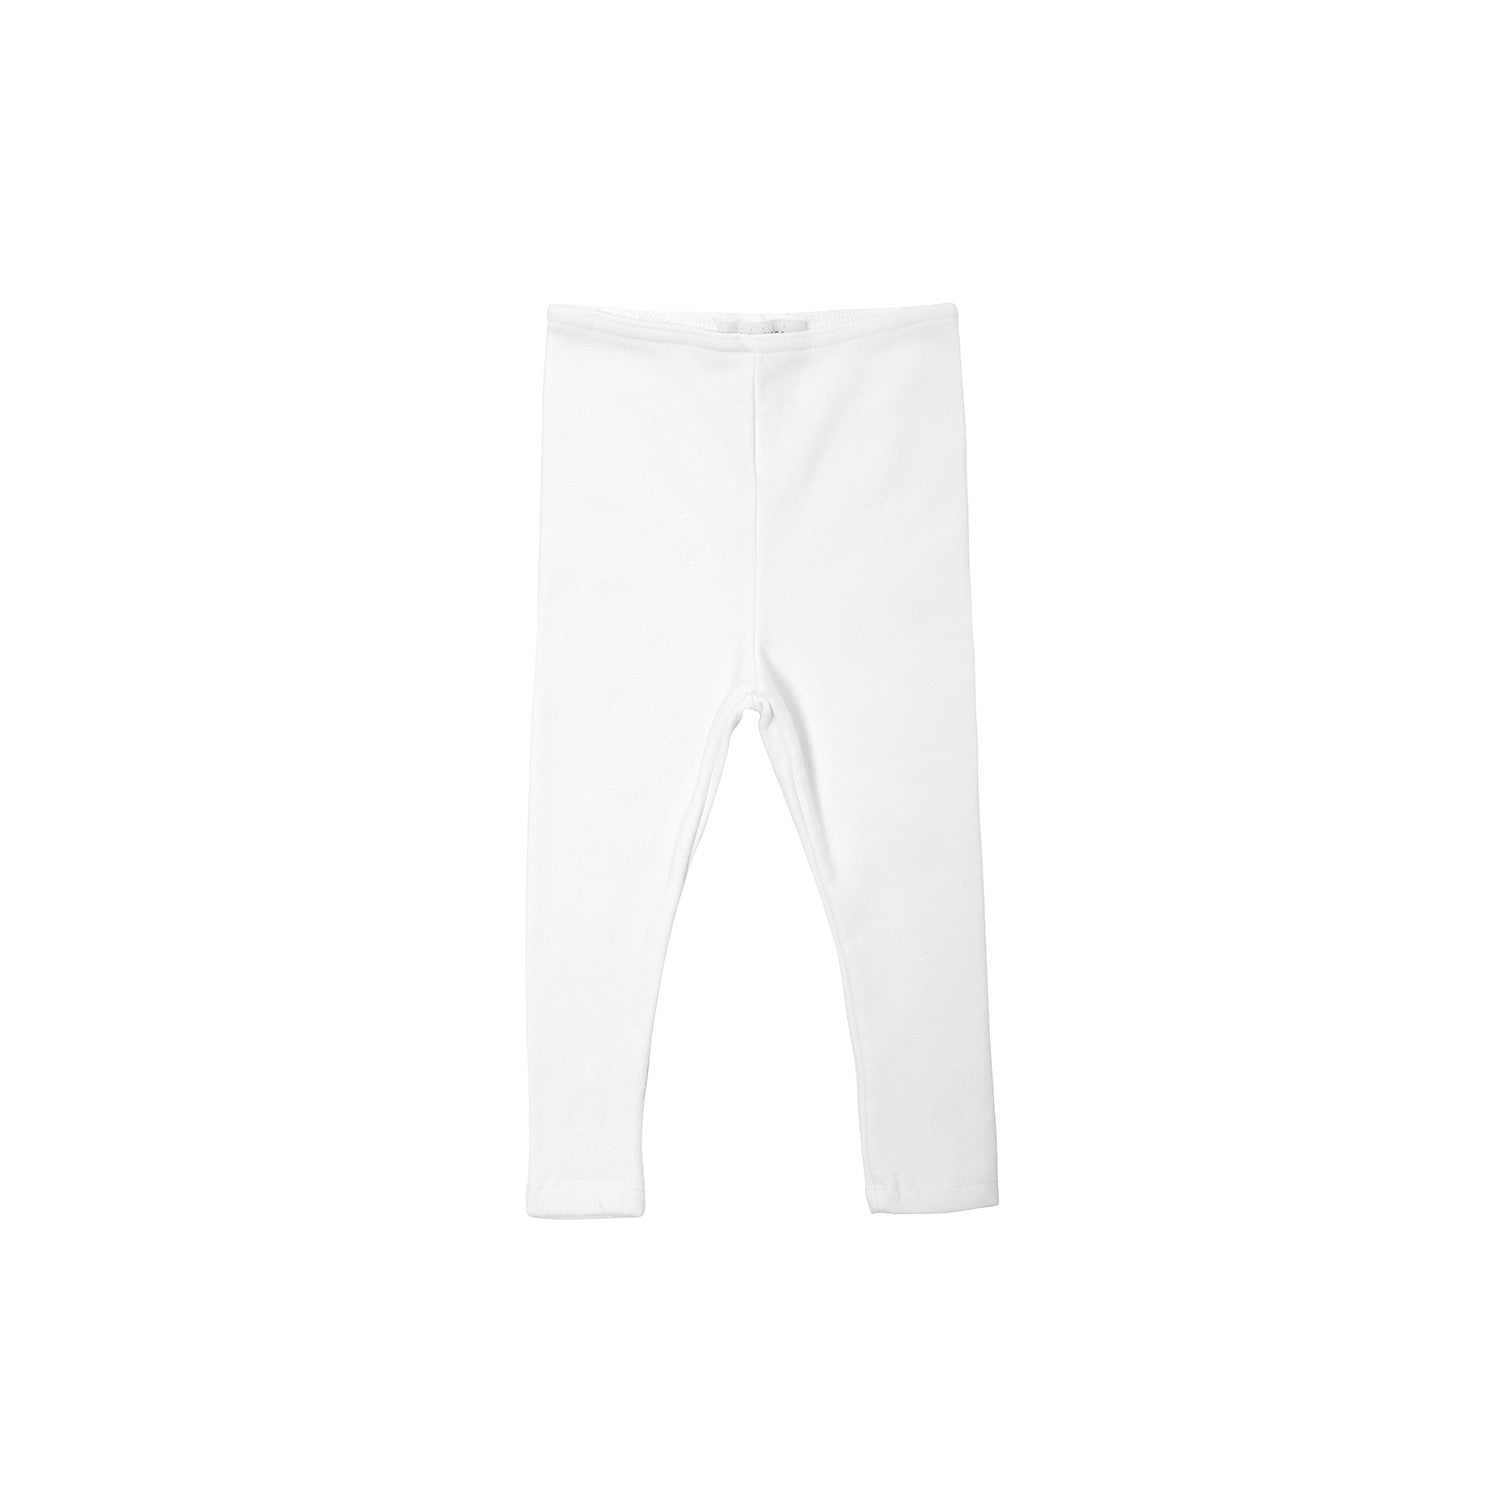 Bene Bene Ivory Warm Leggings - Ladida